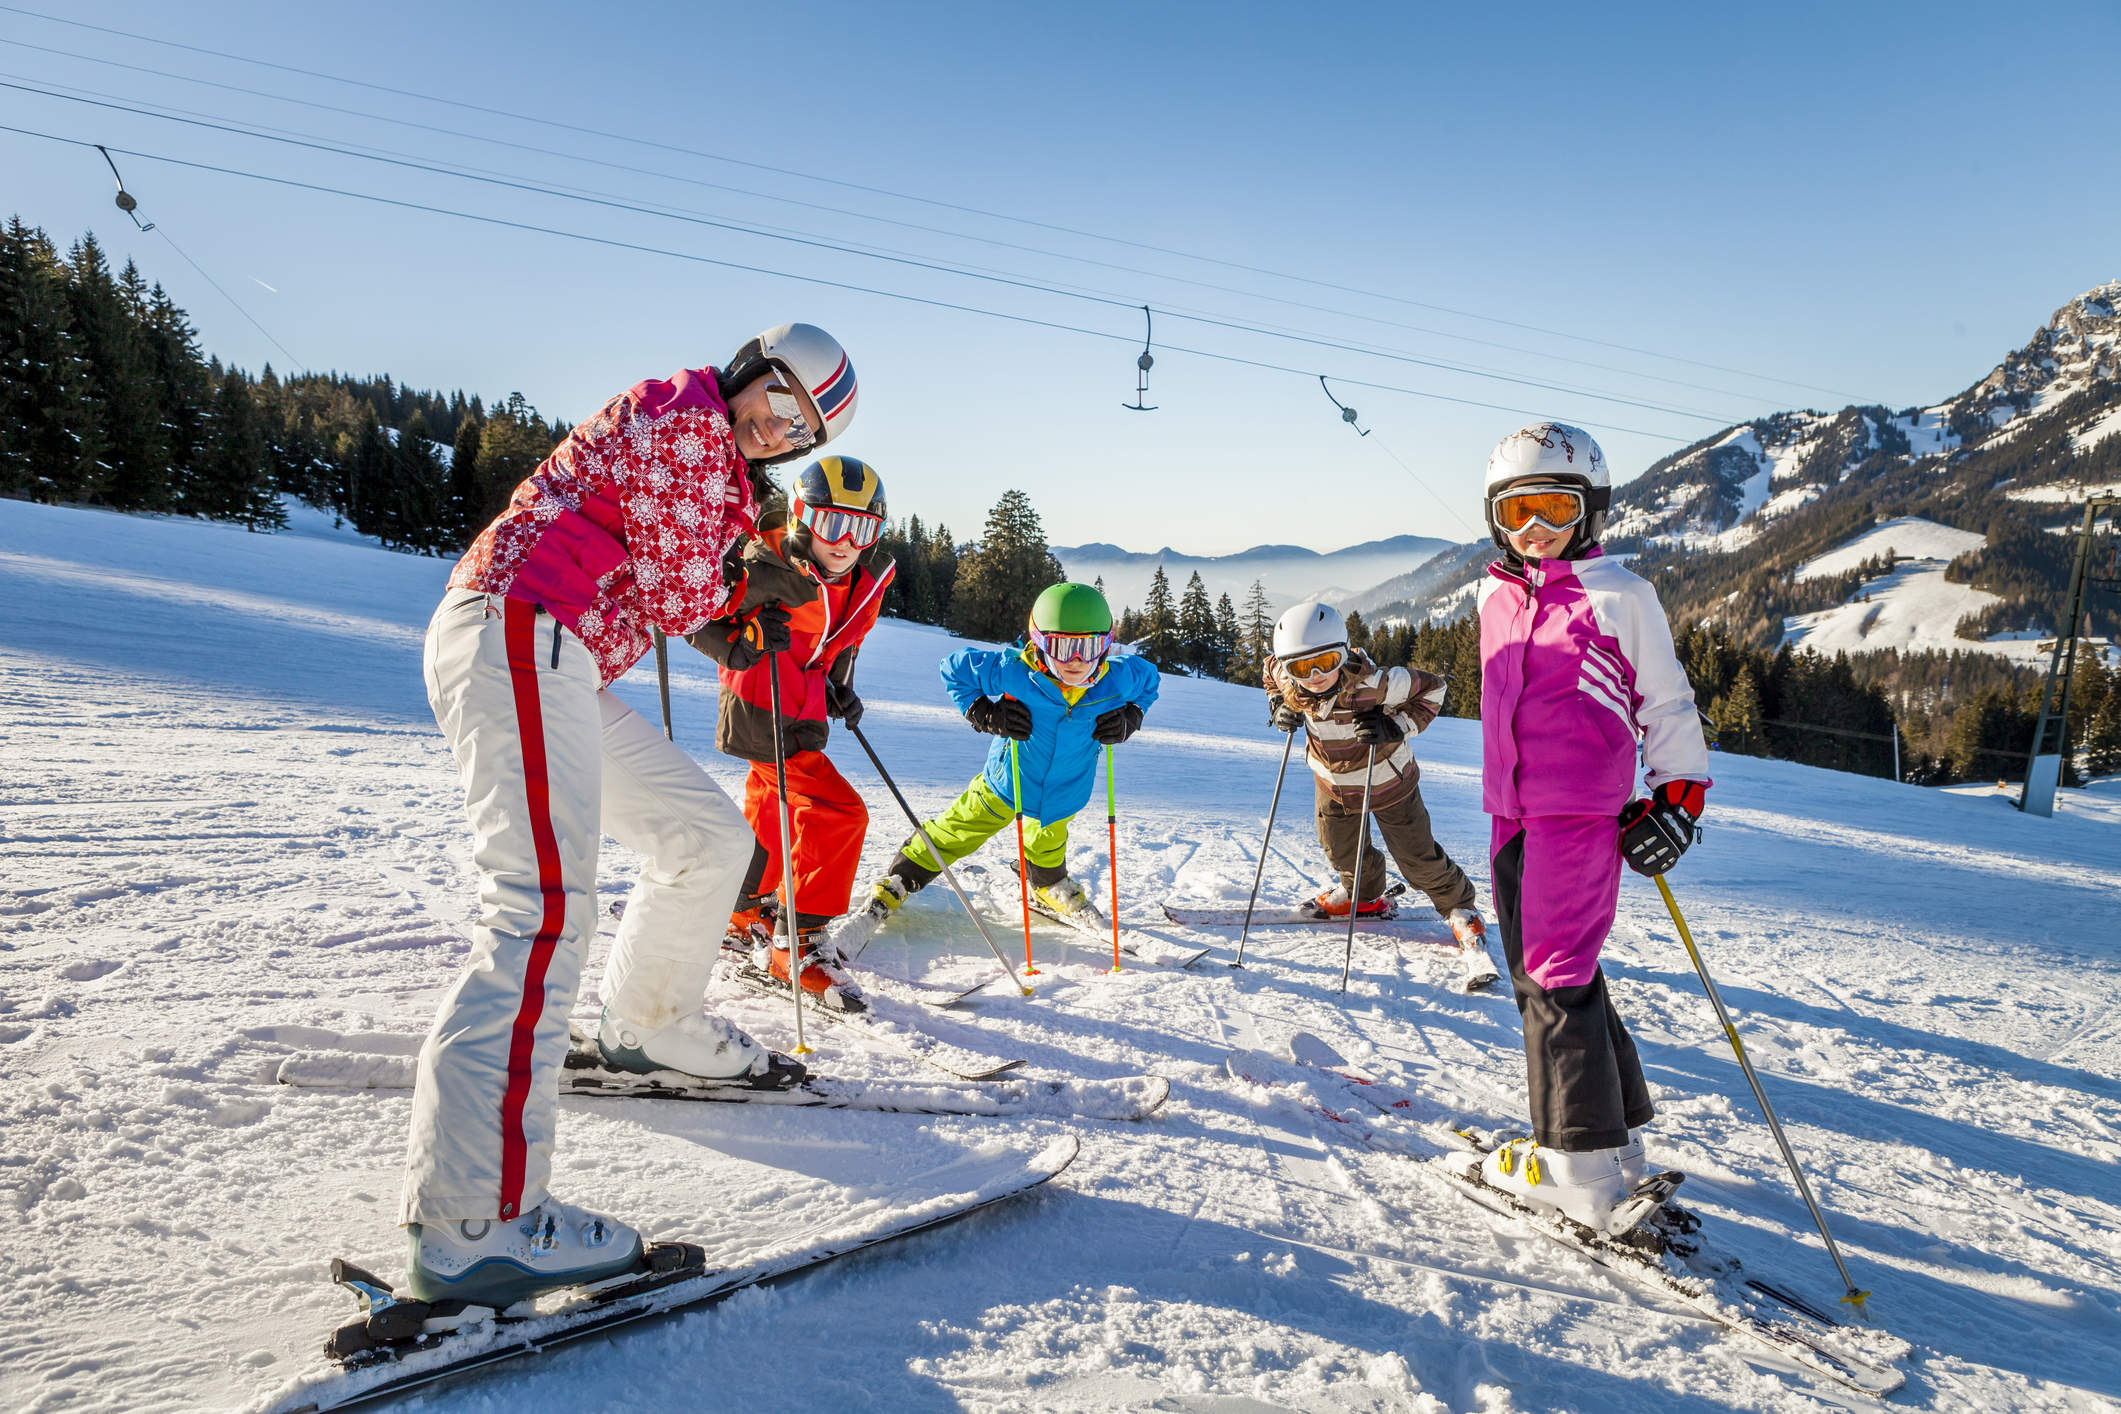 Collectifs ski  6,12 ans / Ski group 6 to 12 years old (15h -17h)